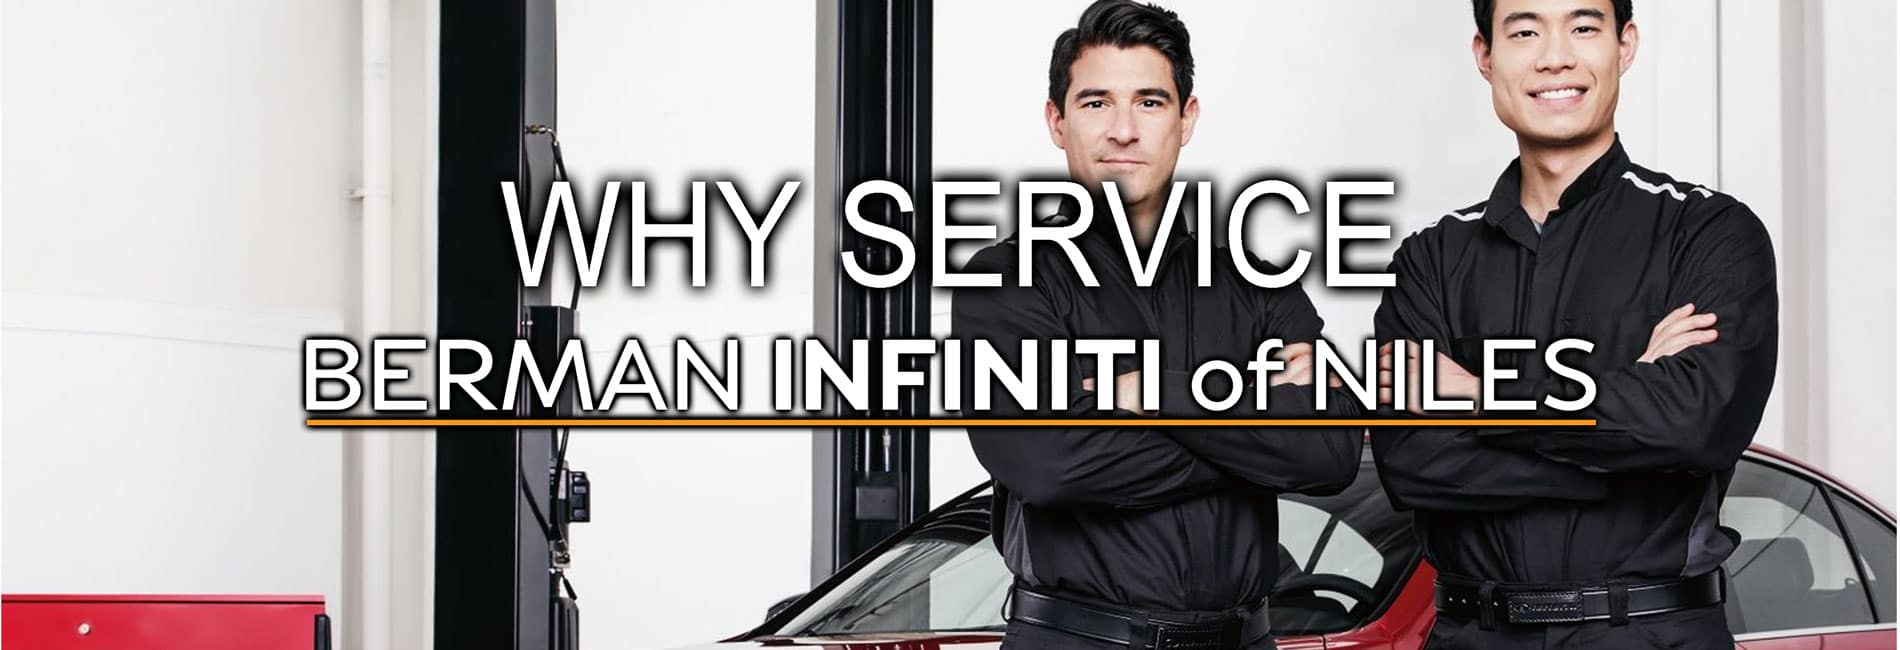 Why Service at Berman INFINITI of Niles